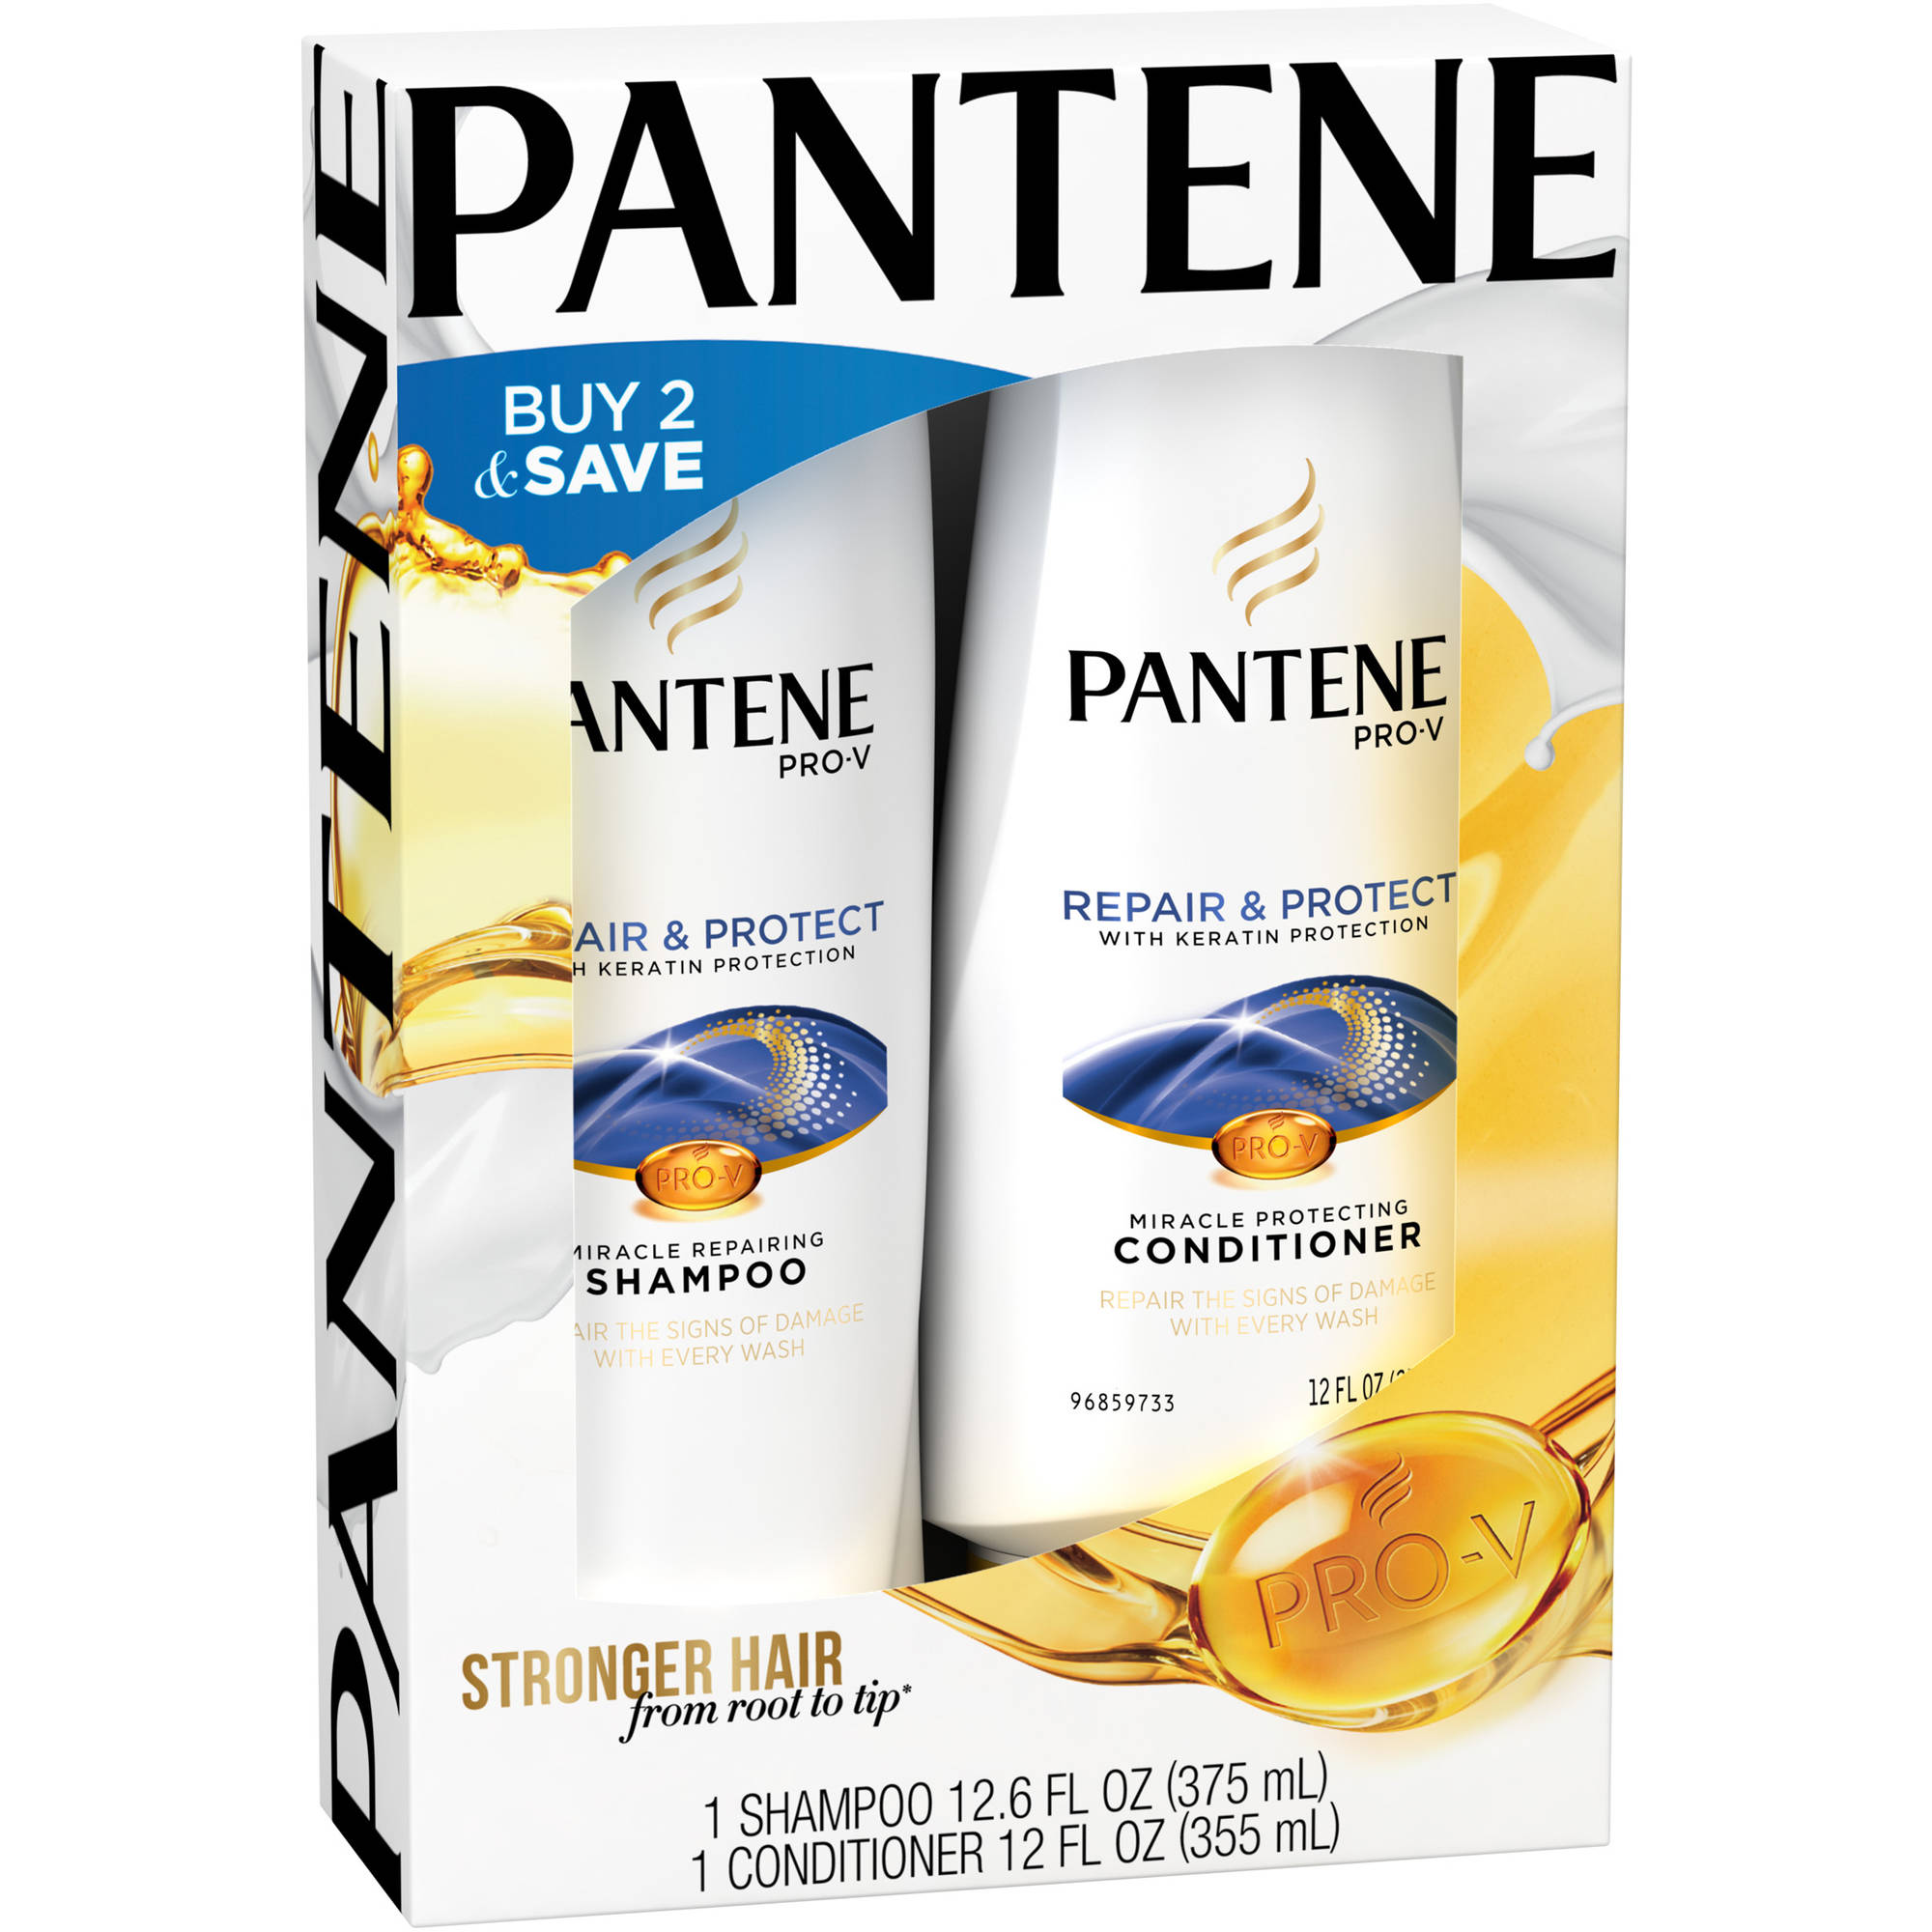 Pantene Pro-V Repair & Protect Shampoo & Conditioner Combo Pack, 2 pc